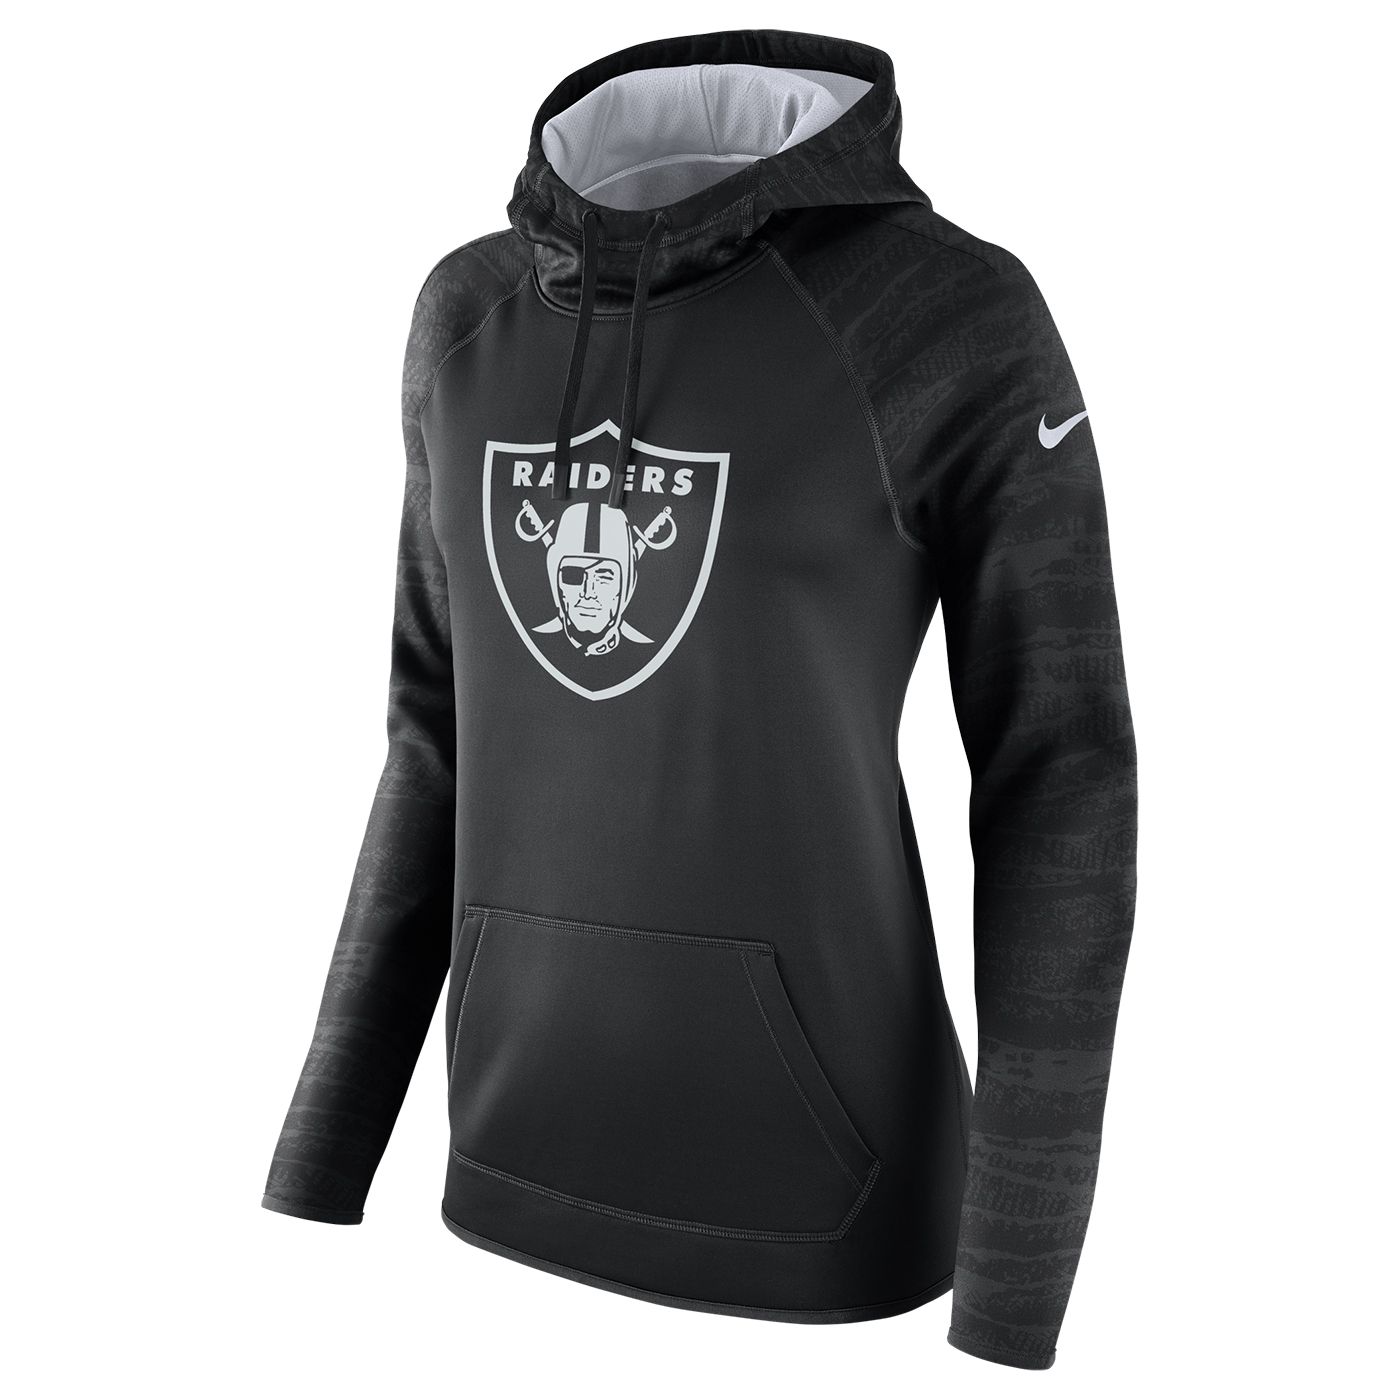 Raiders Nike Women's All Time Therma Hood